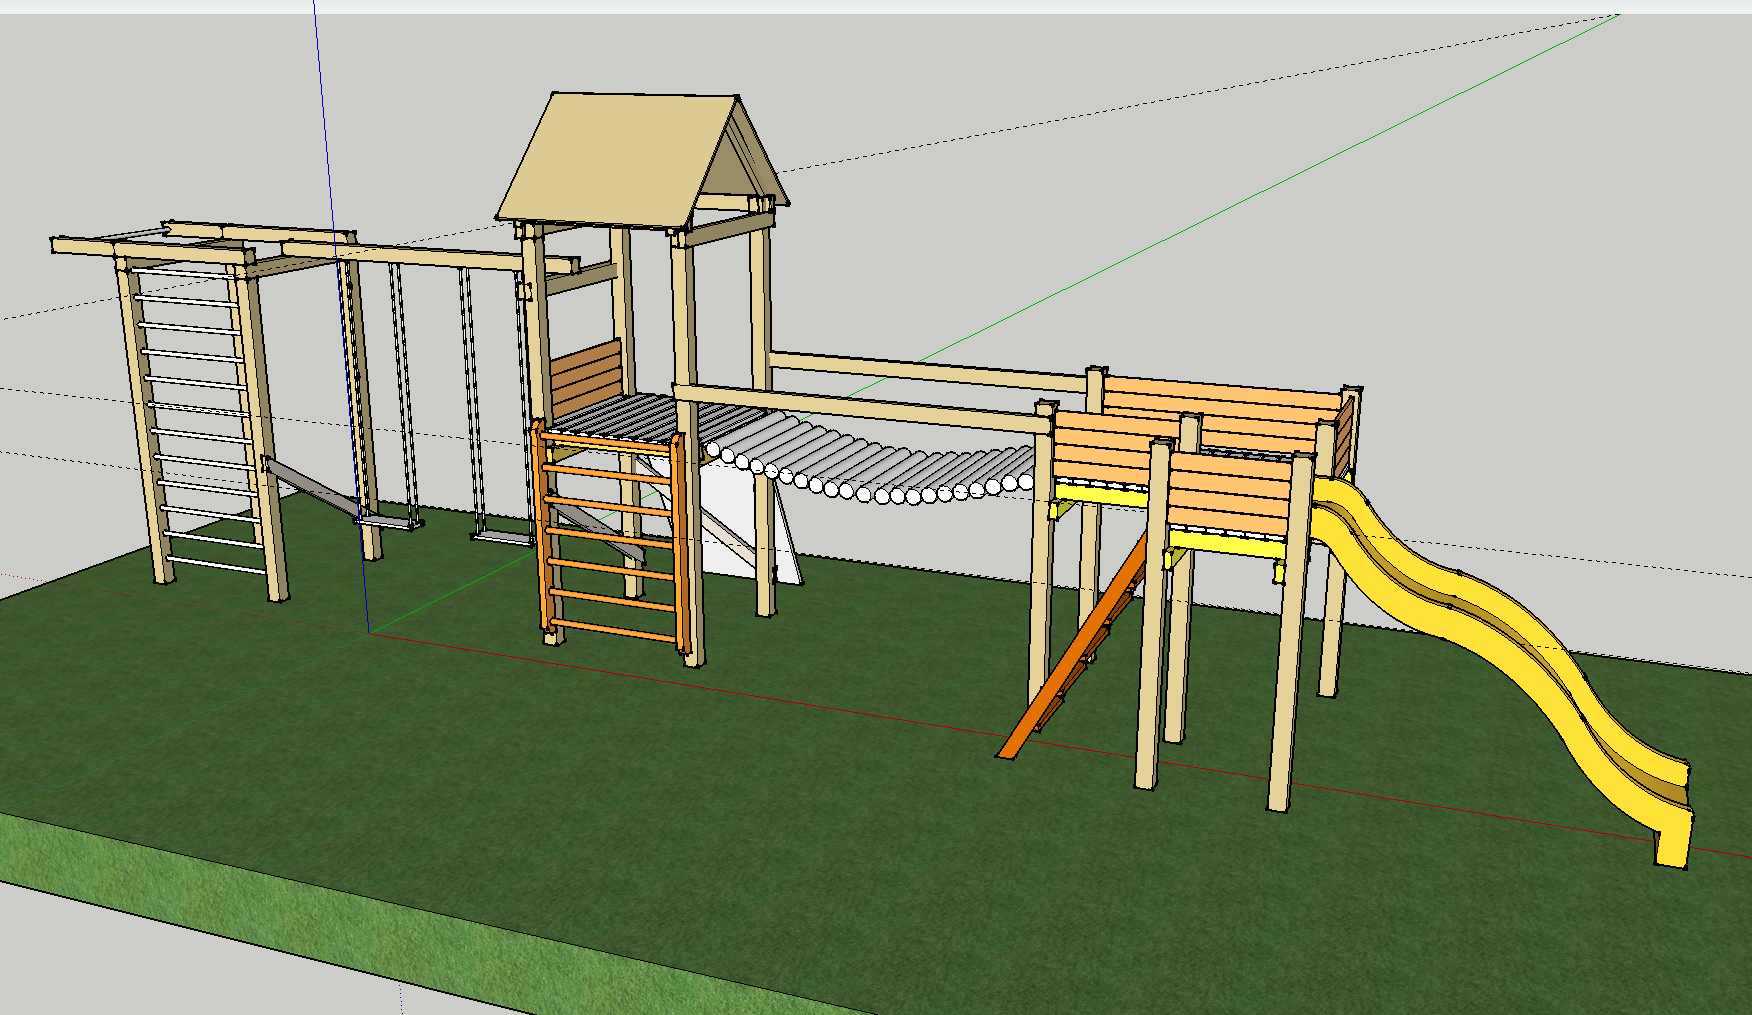 1001 pallets pallet kids playground here is a home made playground - Diy Kids Playground Diy Kids Playground Project Jono Udrio Tinklara Tis